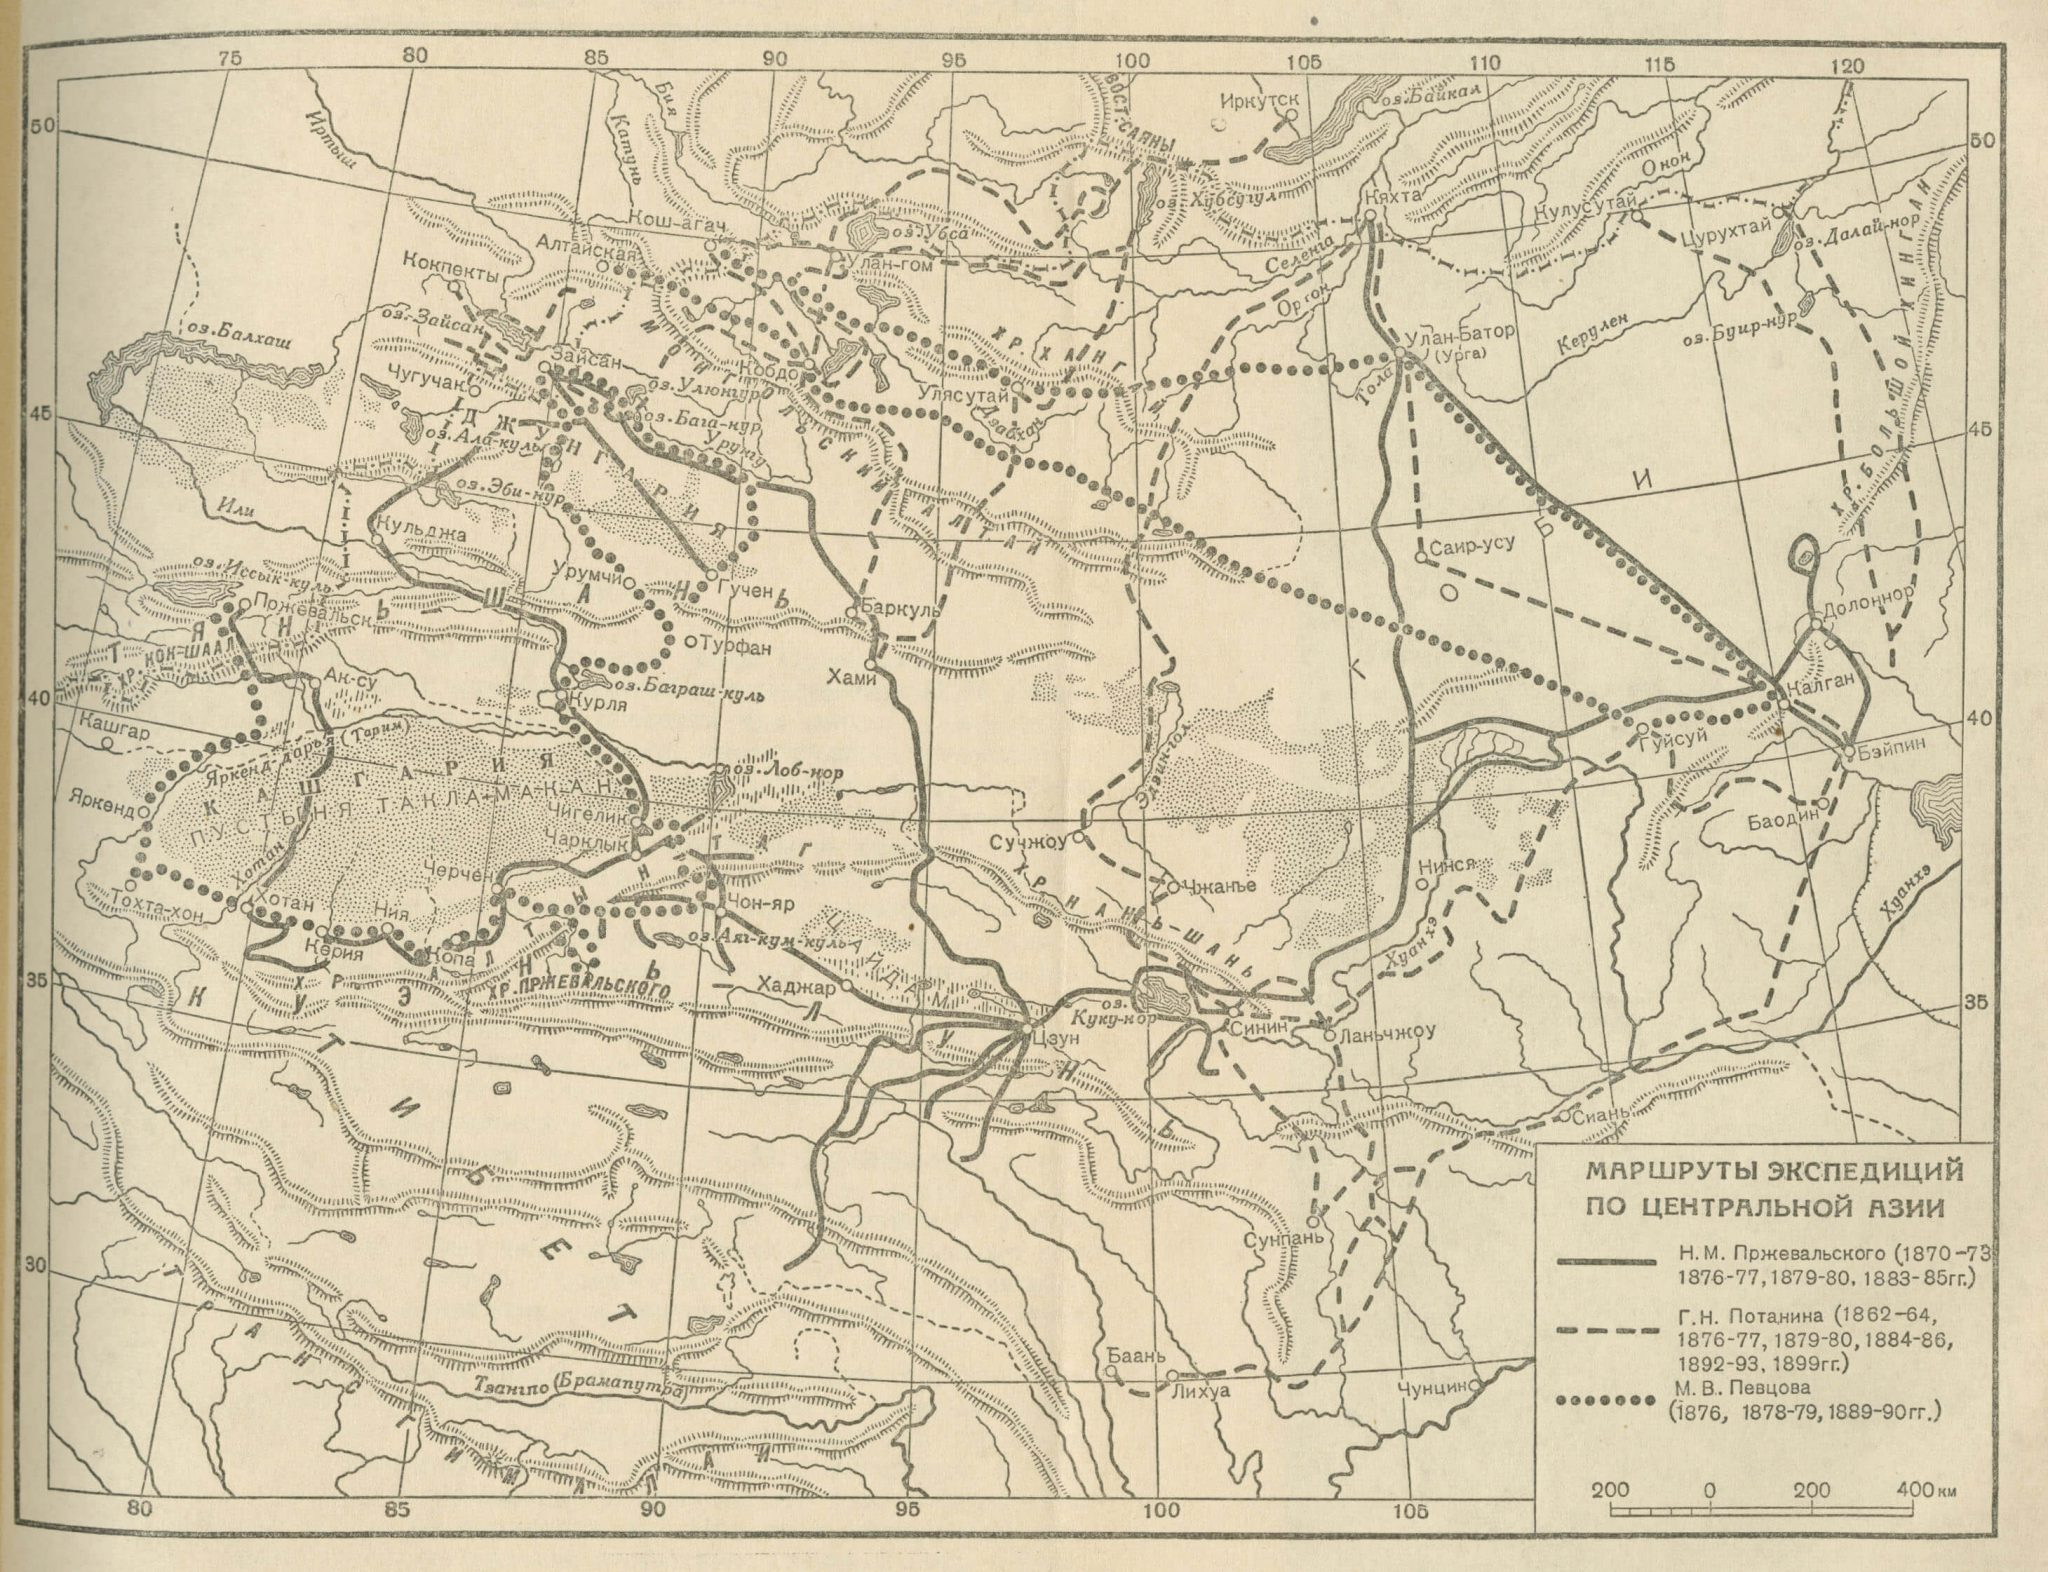 Map of expedition routes in Central Asia